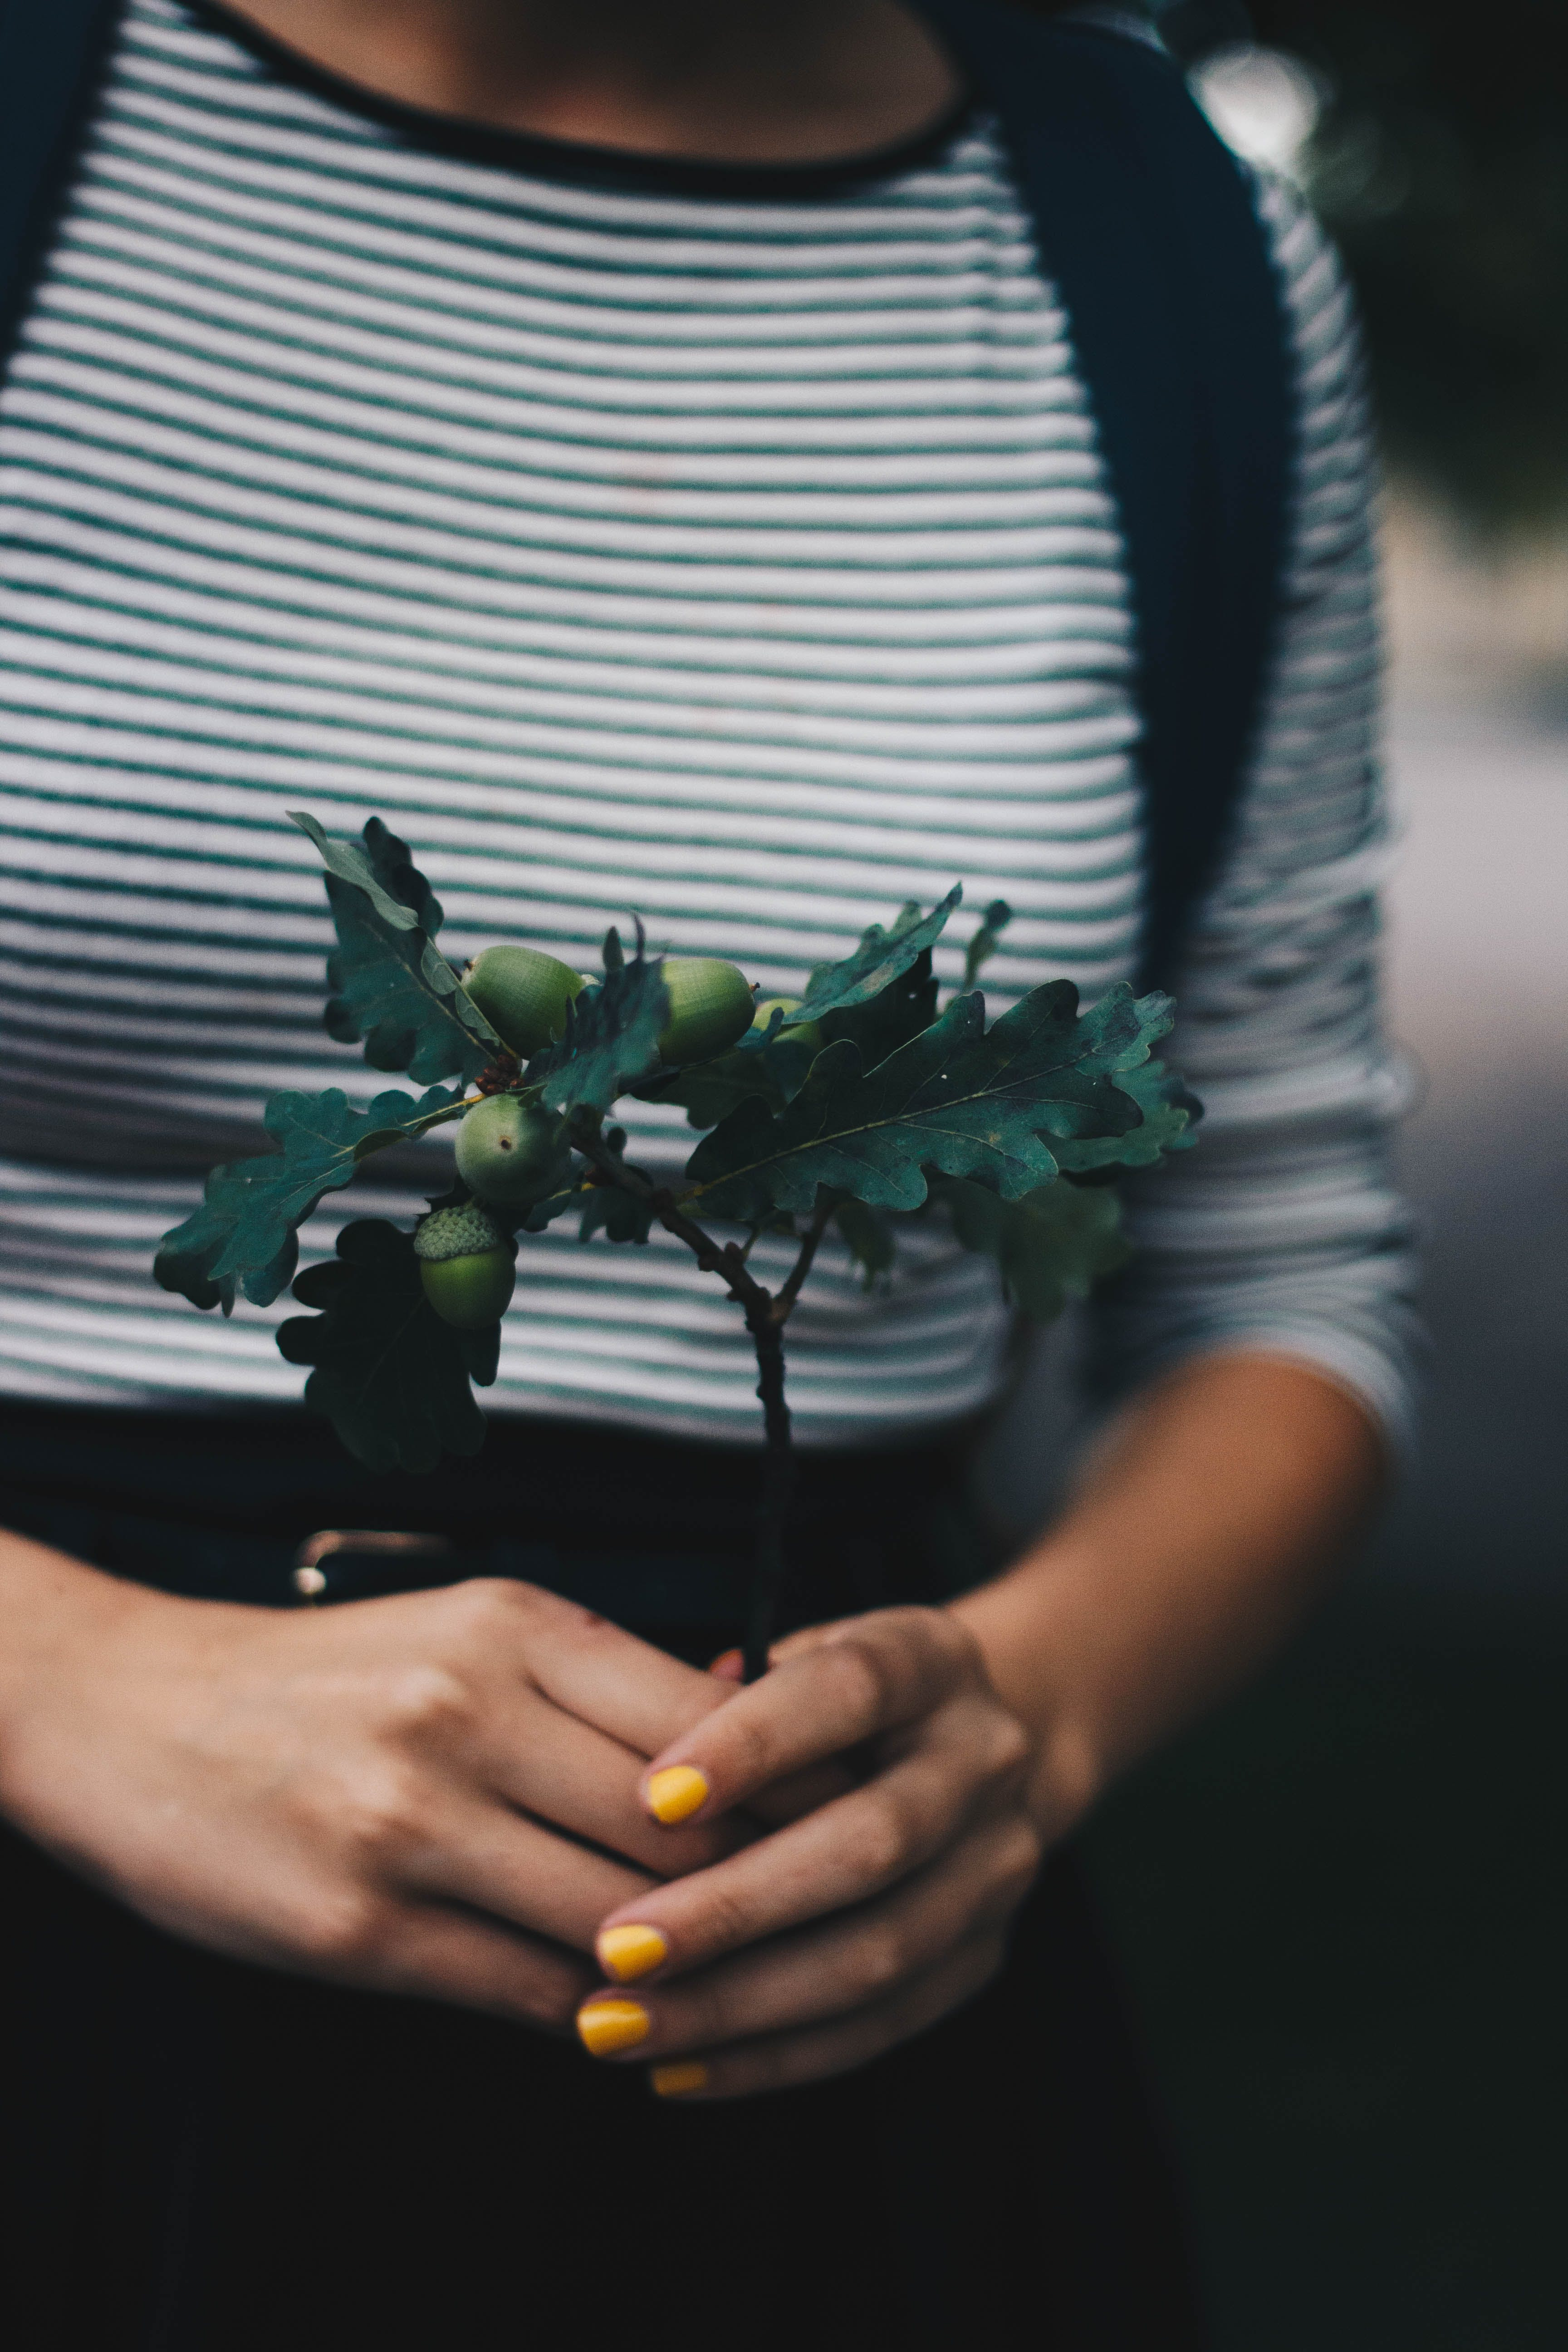 Selective Focus Photograph of Green Plant on Person's Hands